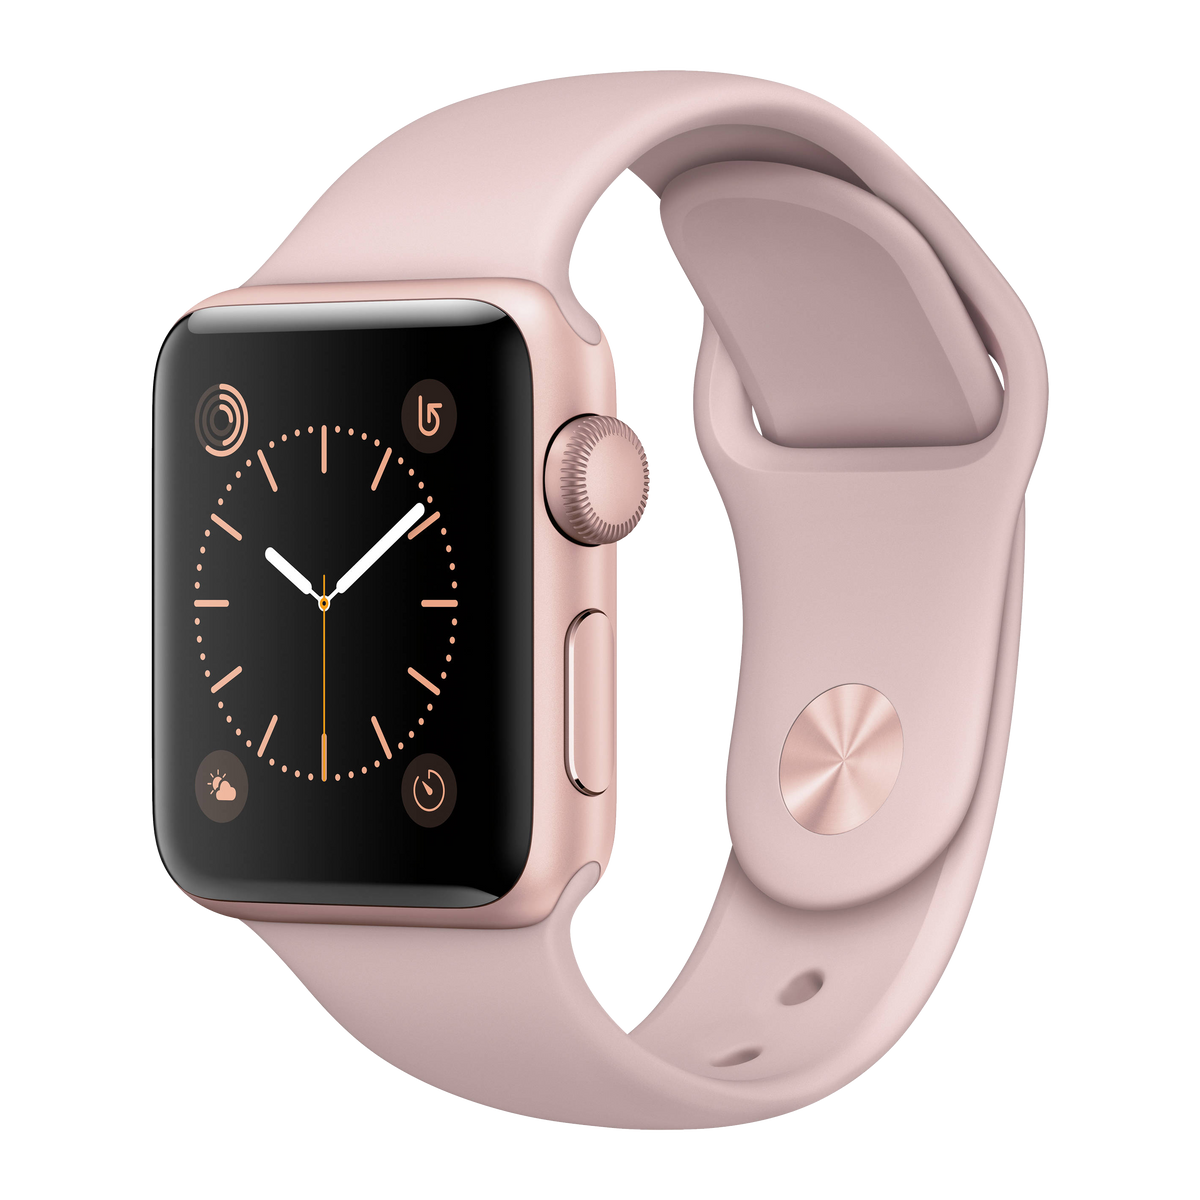 Mint+ Apple Watch Series 2 42mm - Rose Gold - Value